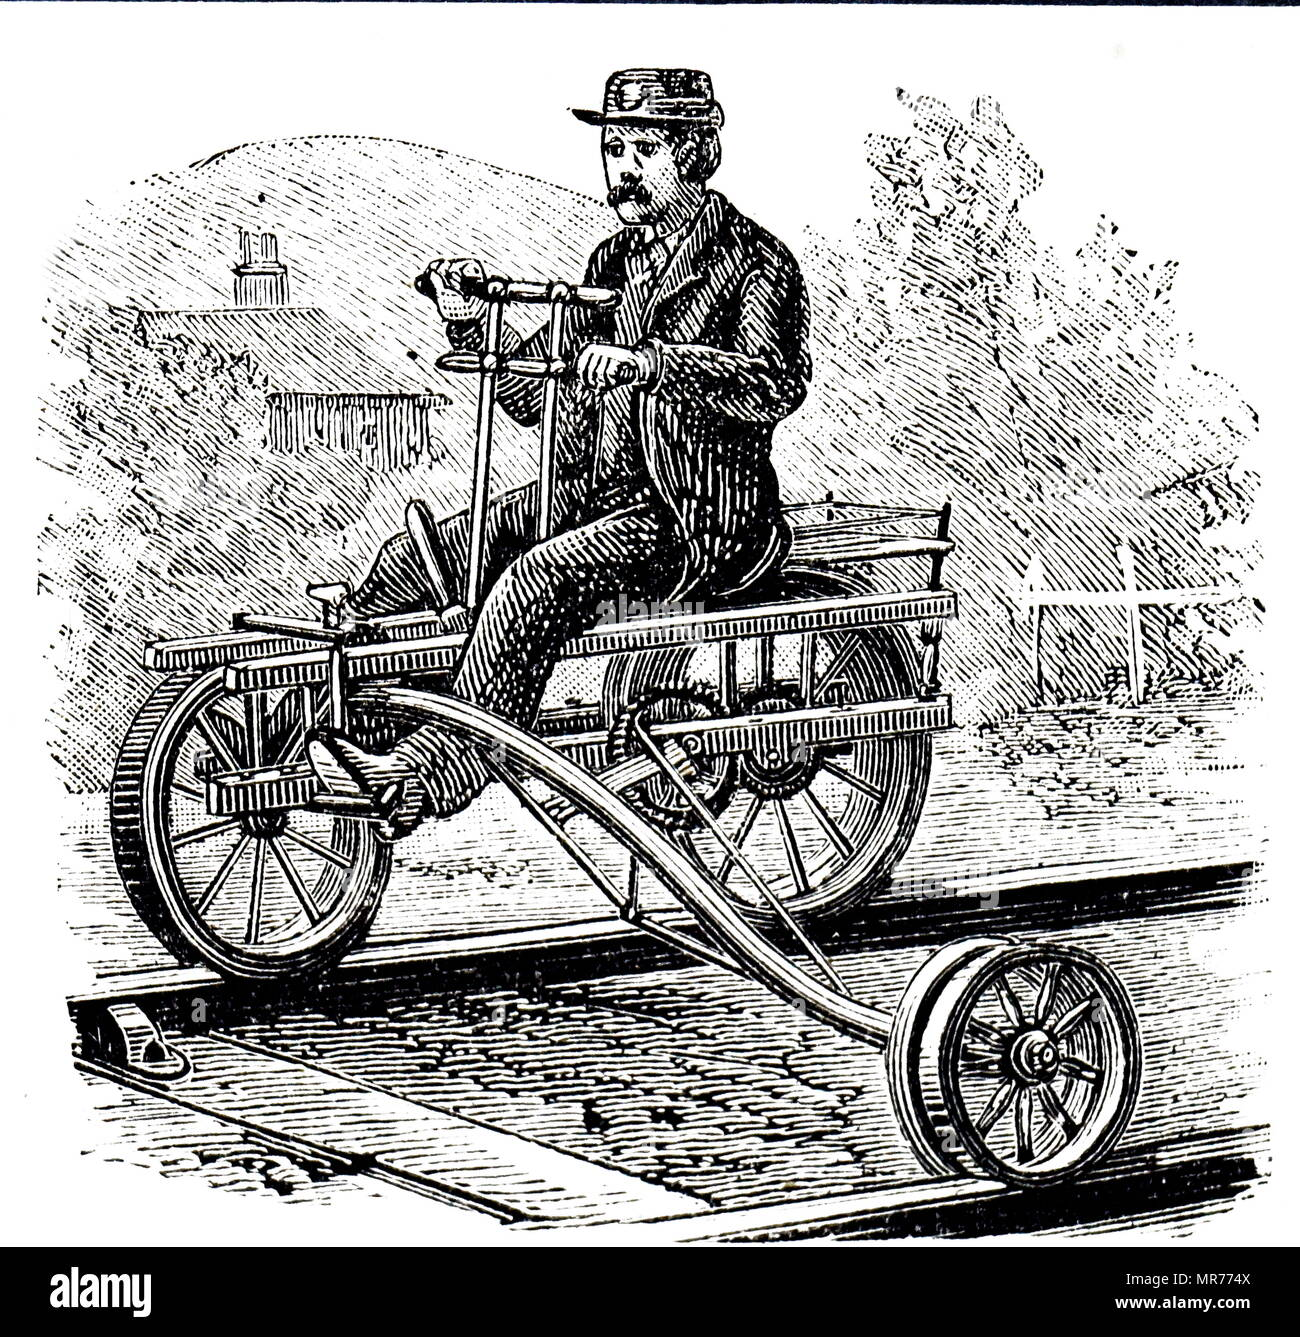 Engraving depicting a velocipede used on the railways round Lake Michigan to get employees quickly from point to point. The rider used both a hand lever and his feet to propel the vehicle, and it was possible to dismount and remove it from the rails quickly. Dated 19th century - Stock Image